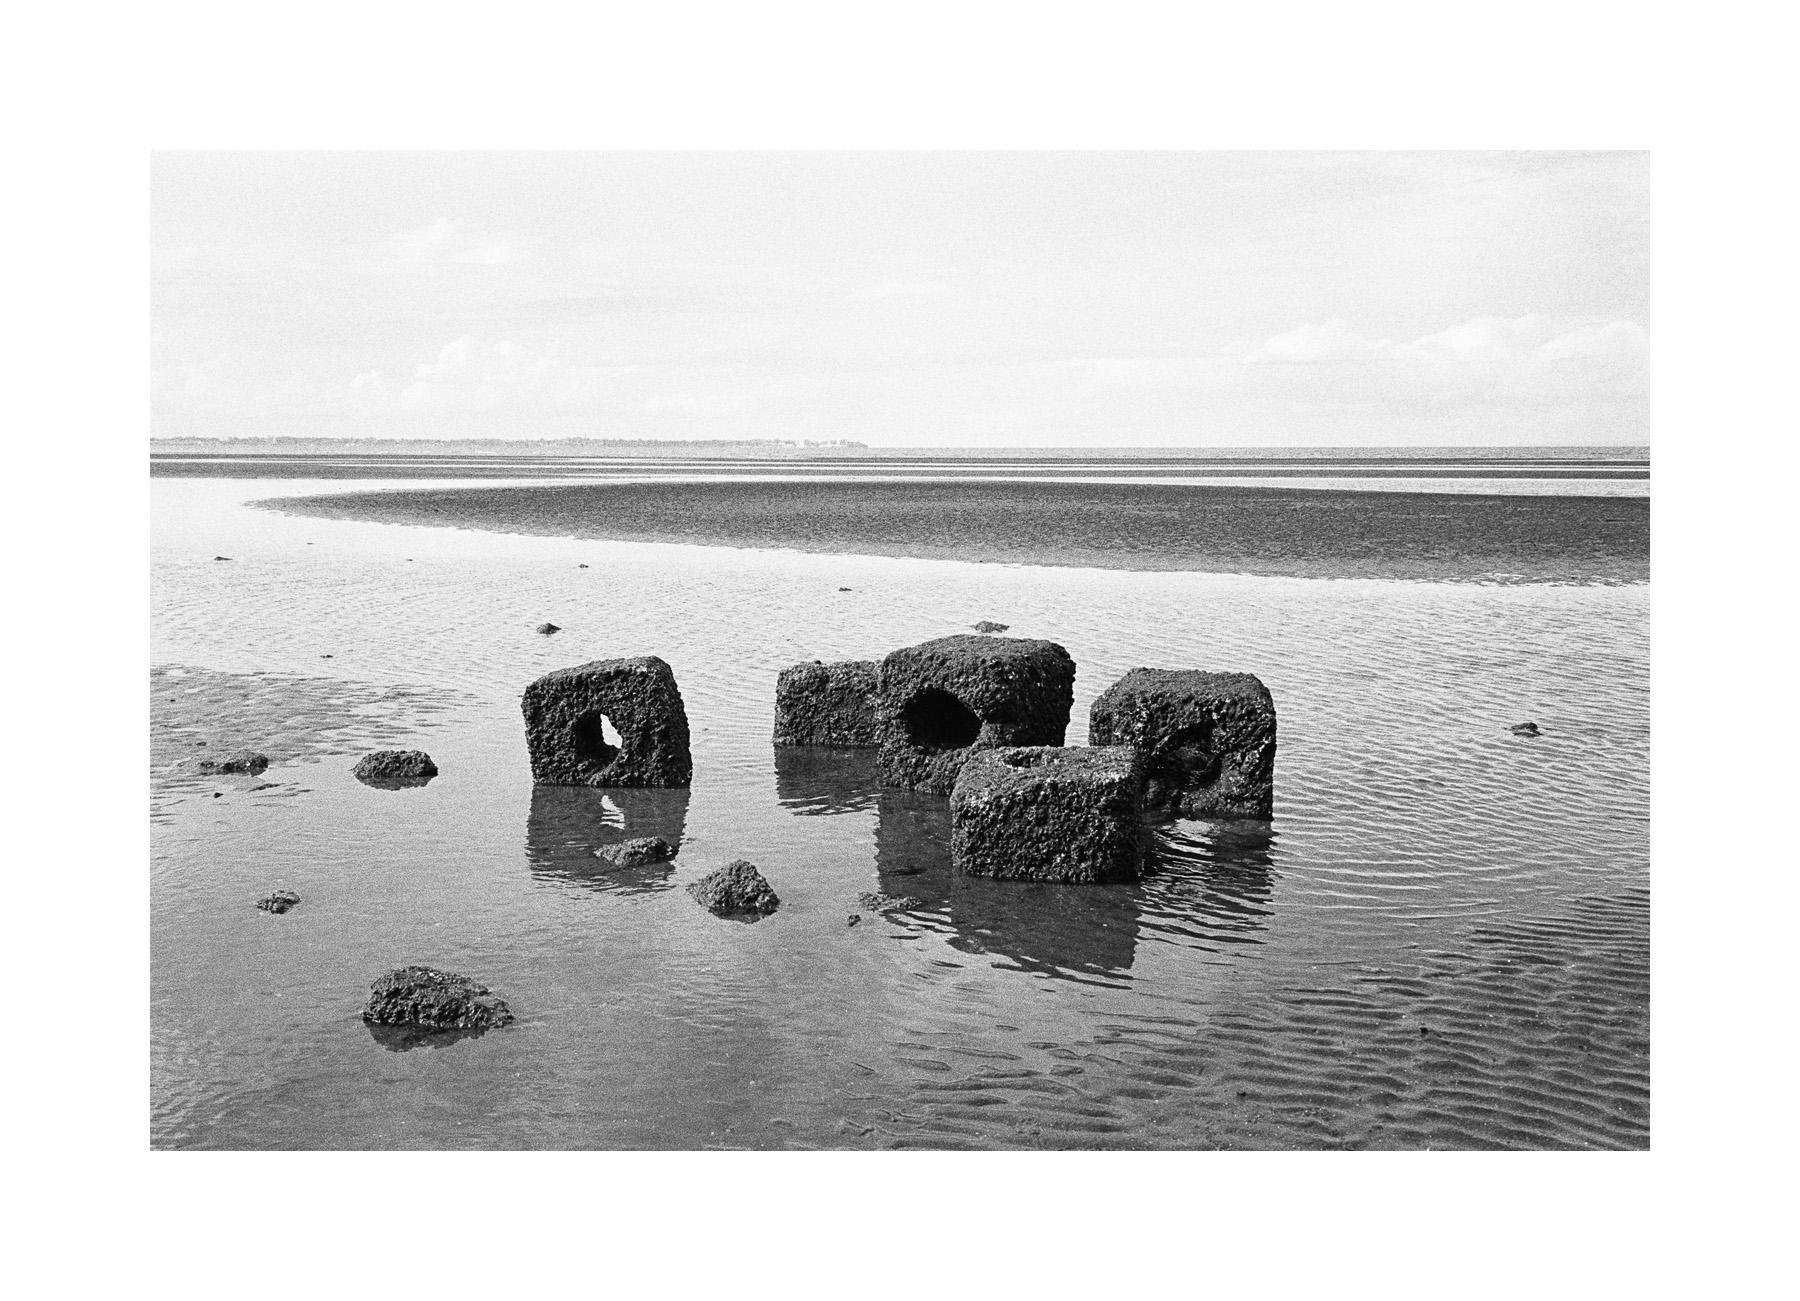 2018106 - Roll 252 - 019-Nick-Bedford,-Photographer-Black and White, Kodak TRI-X 400, Landscape Photography, Leica M7, Seascape, Shorncliffe, Voigtlander 35mm F1.7.jpg